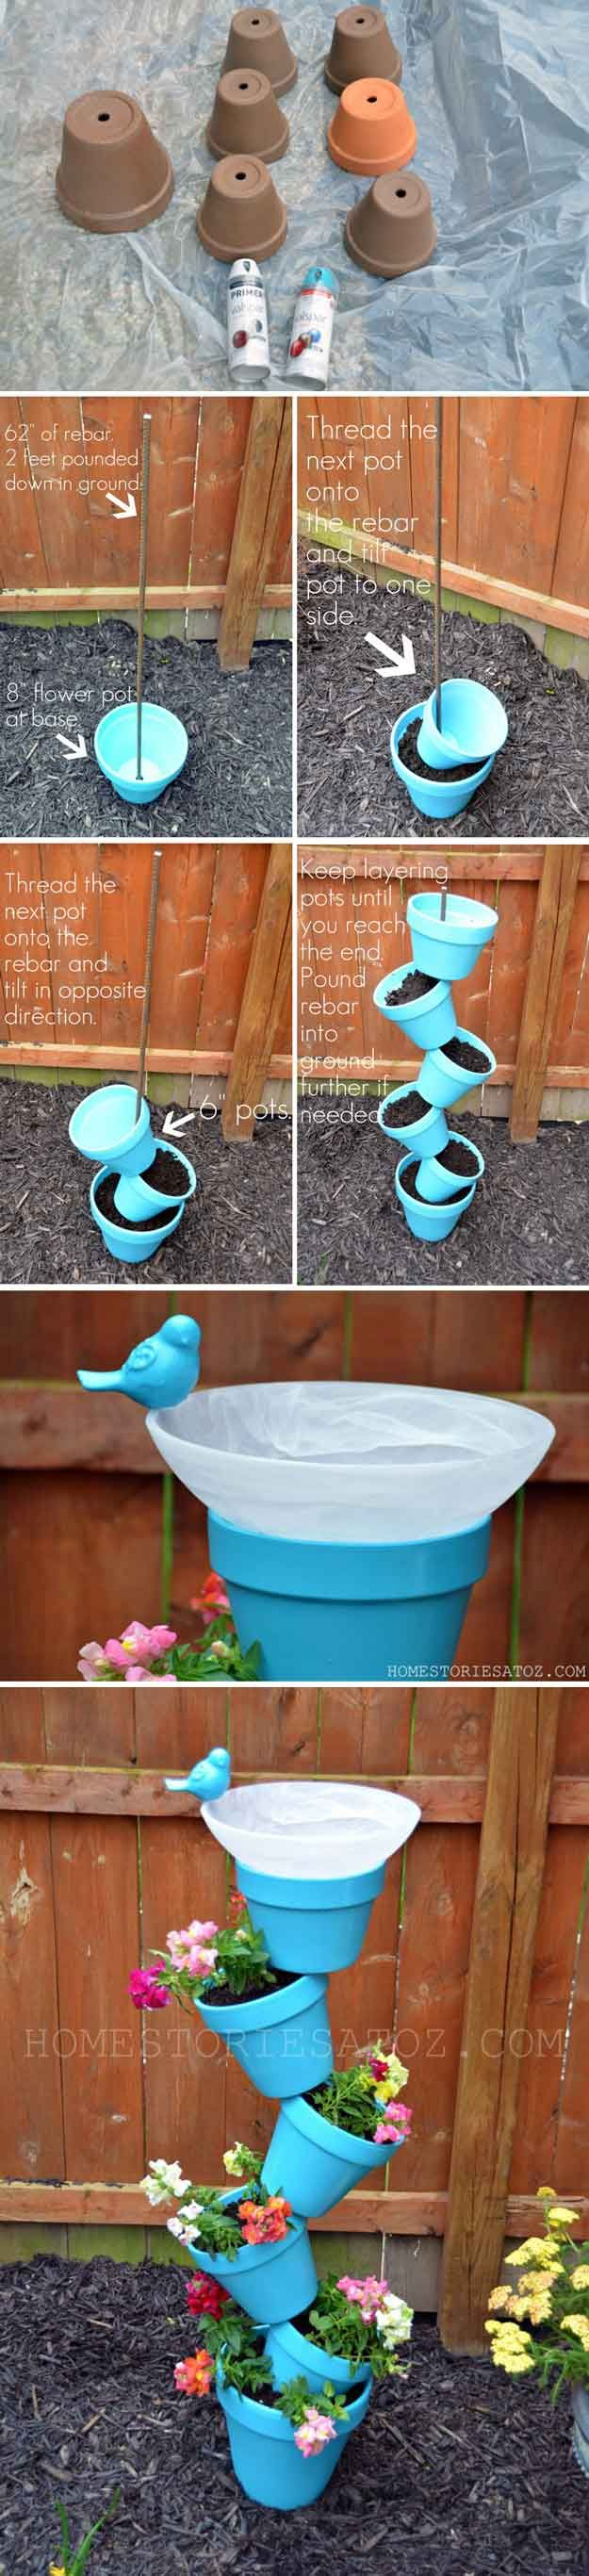 18 Easy Backyard Projects To DIY With The Family is part of Backyard projects, Crafts, Garden art, Bird bath, Garden projects, Creative - Turn these easy backyard projects into a family activity  Check out which furniture pieces you and the kids can make for the next DIY weekend!